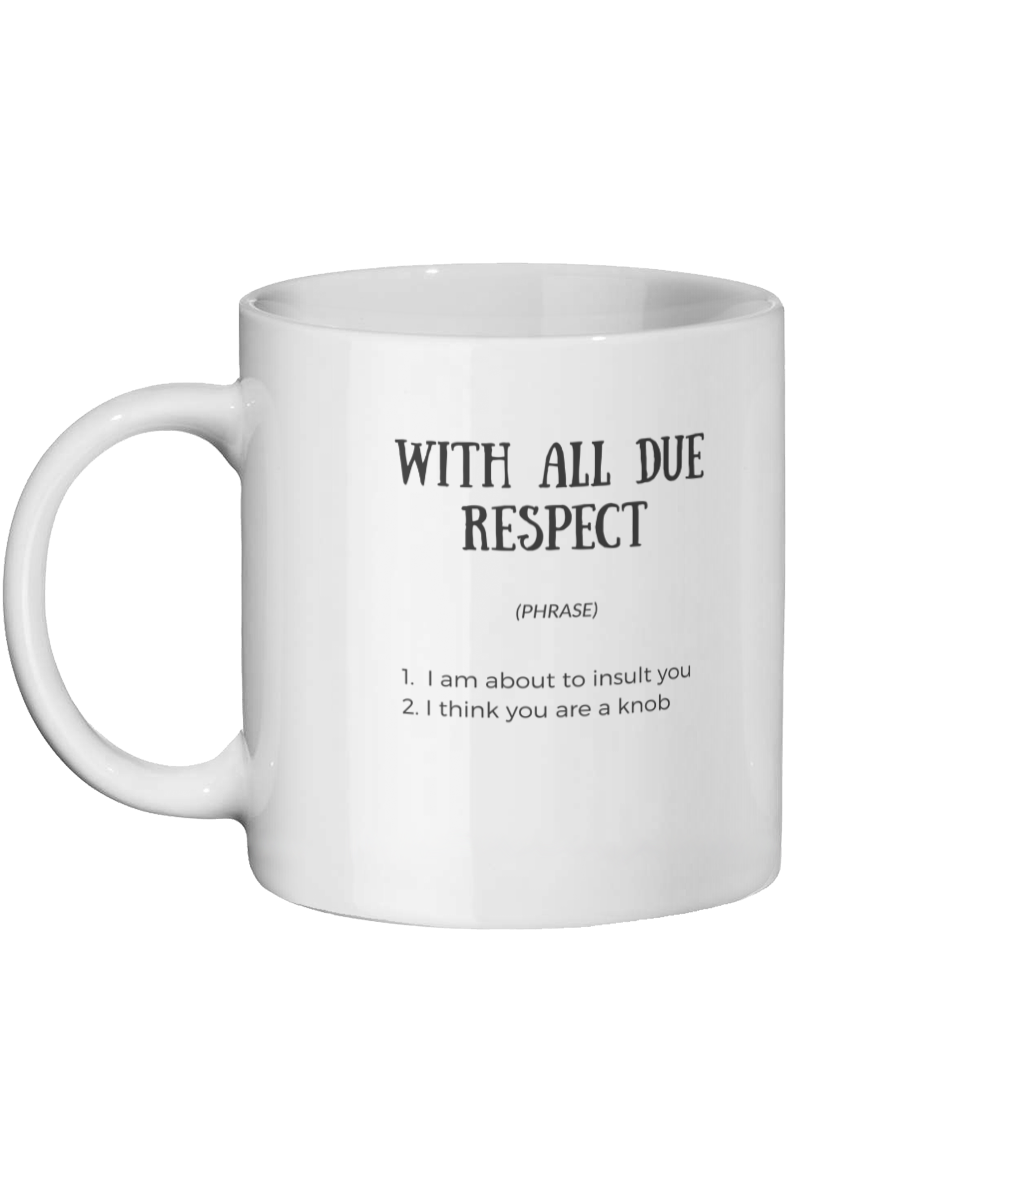 With All Due Respect Mug Left-side